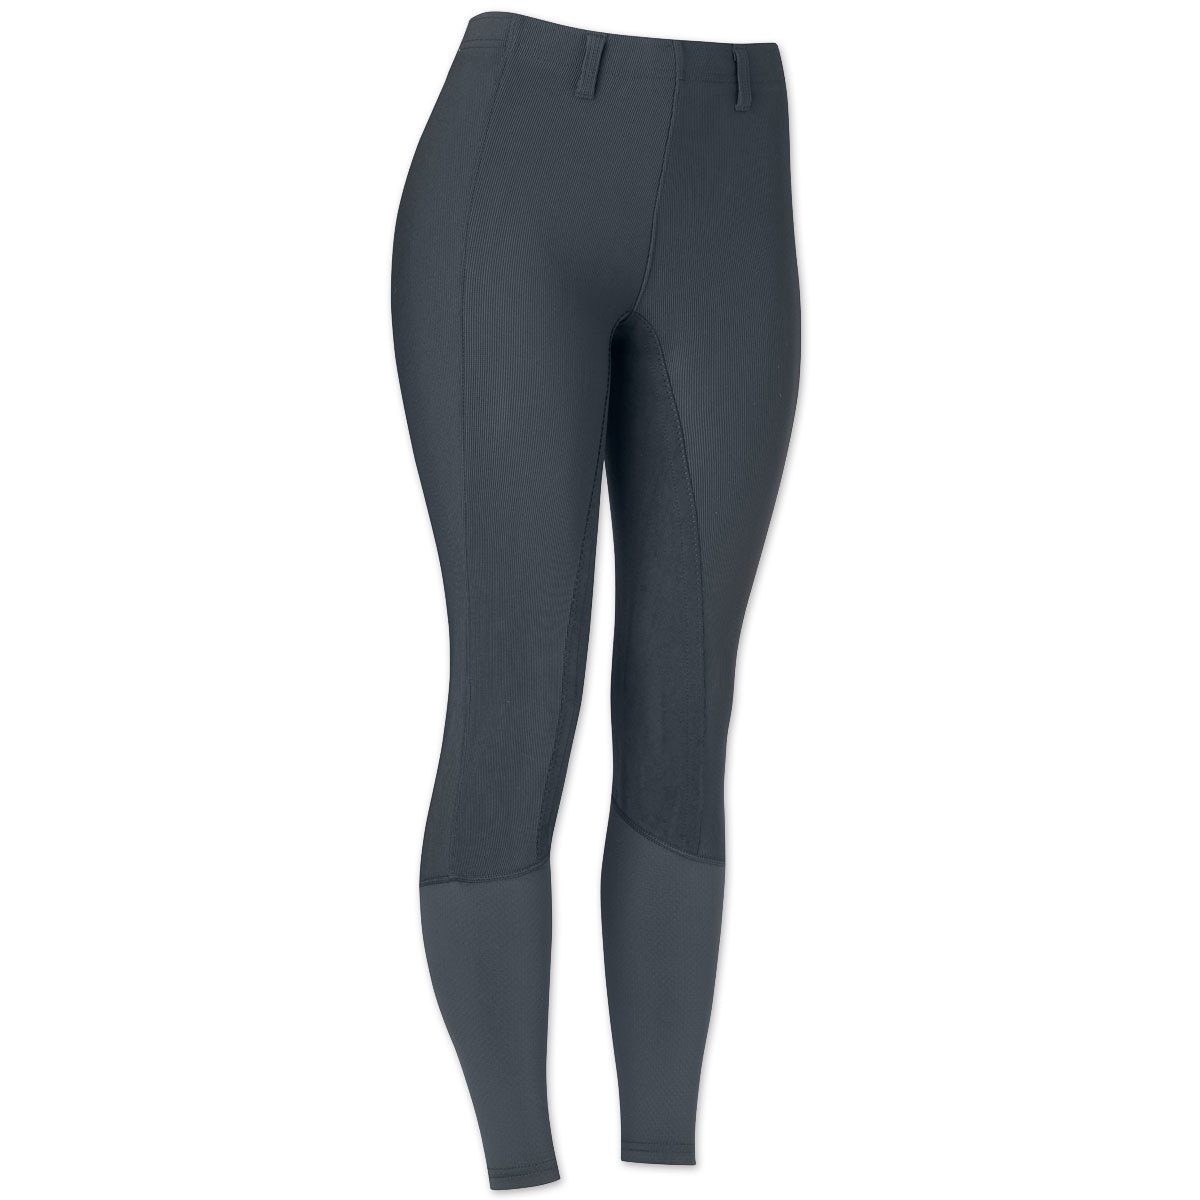 Irideon Cadence Full Seat Breeches